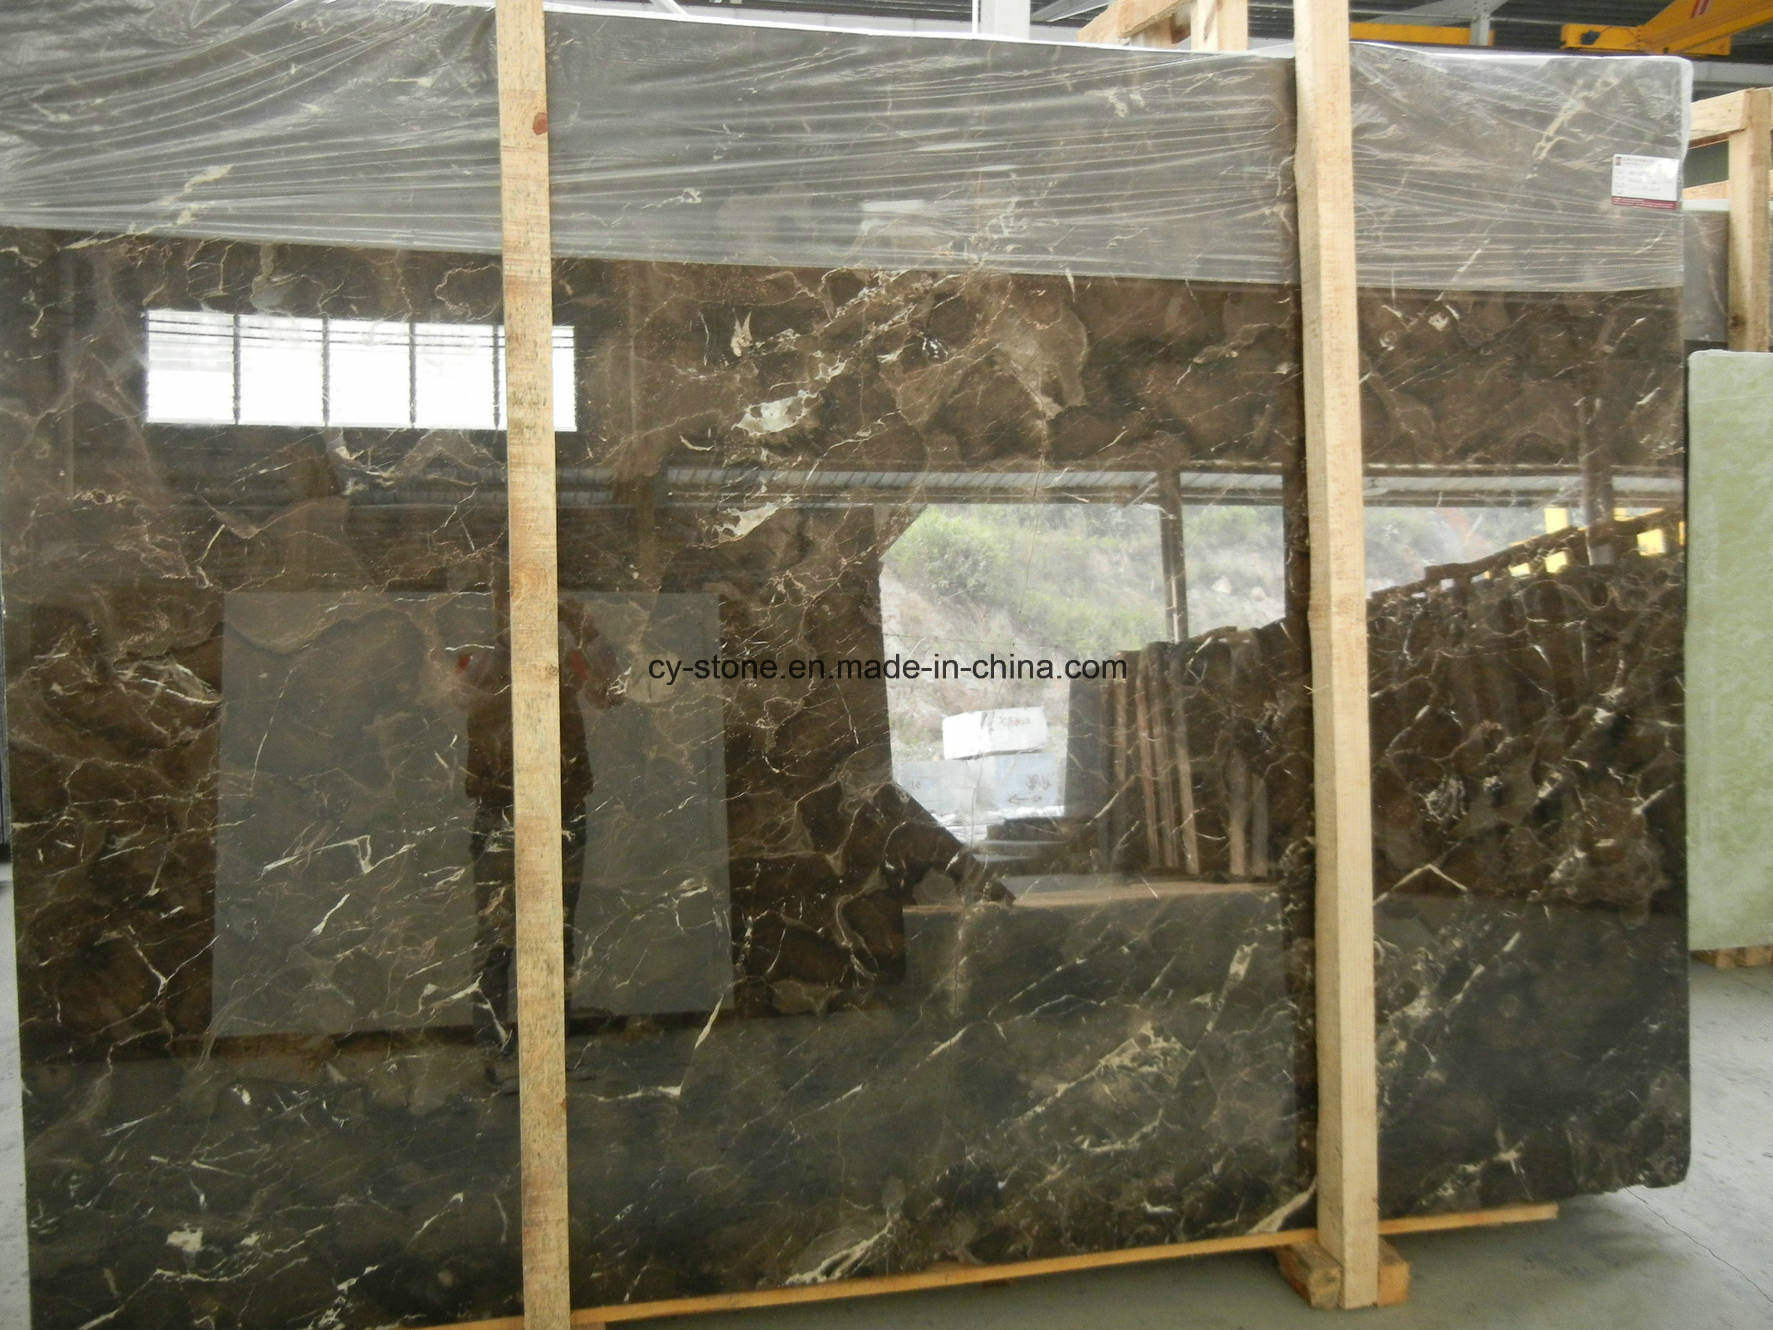 Chinese Dark Emperador Marble Slab for Flooring/Wall Tile